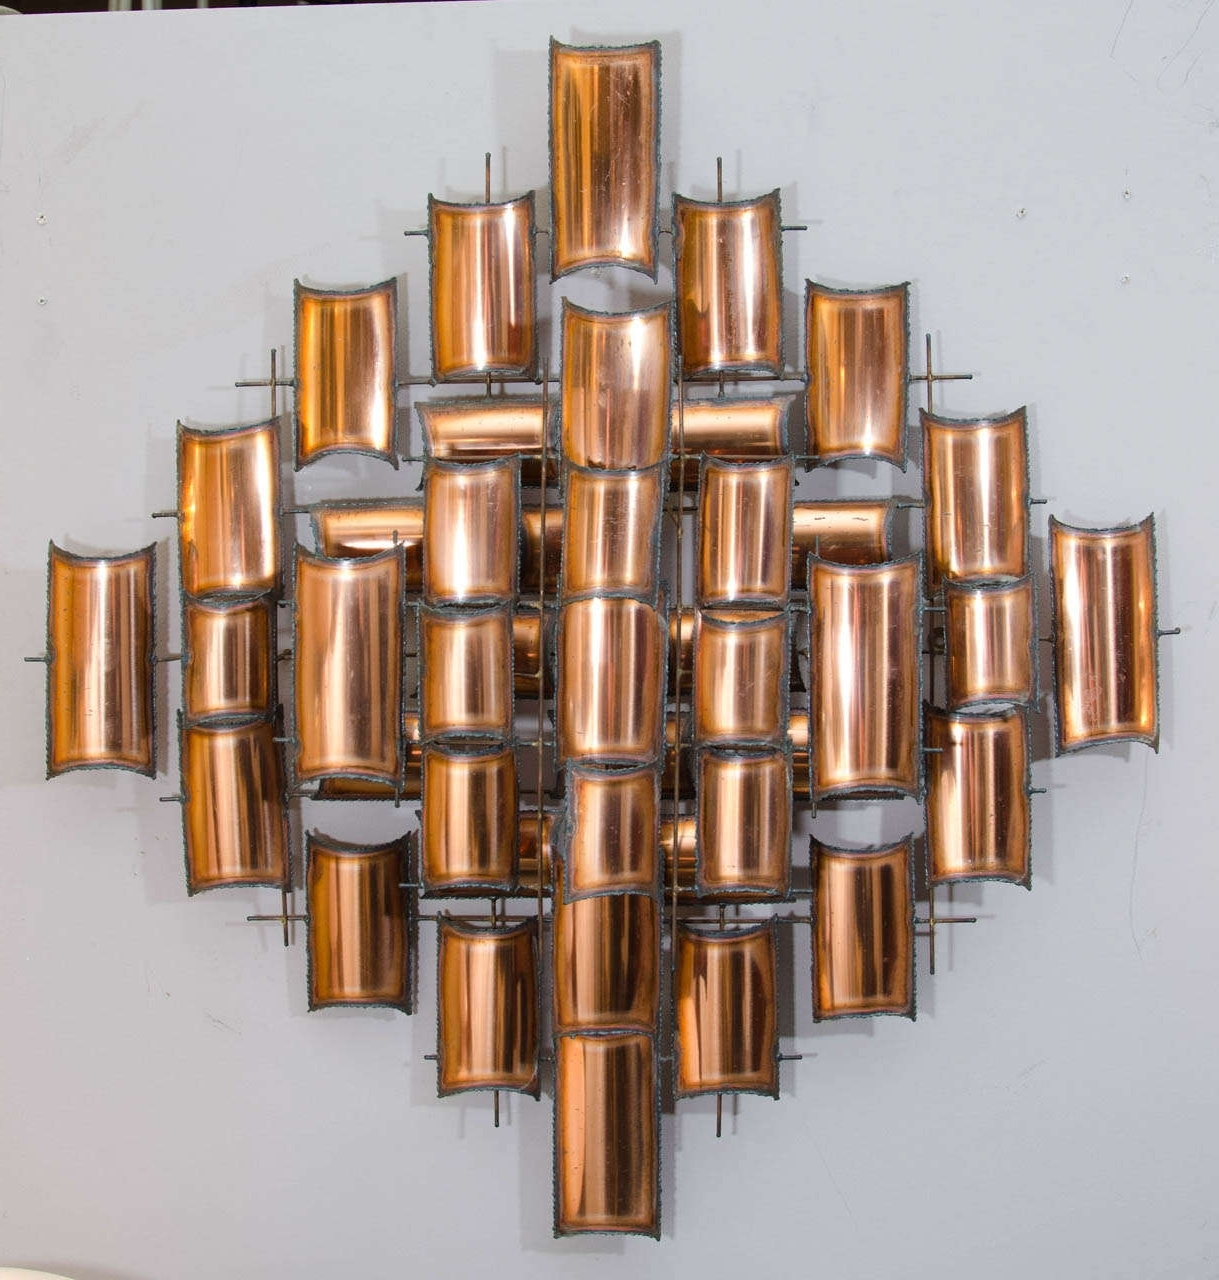 Trendy Wall Art Designs: Copper Wall Art Home Decorate Wall Art Abstract For Copper Wall Art Home Decor (View 12 of 15)